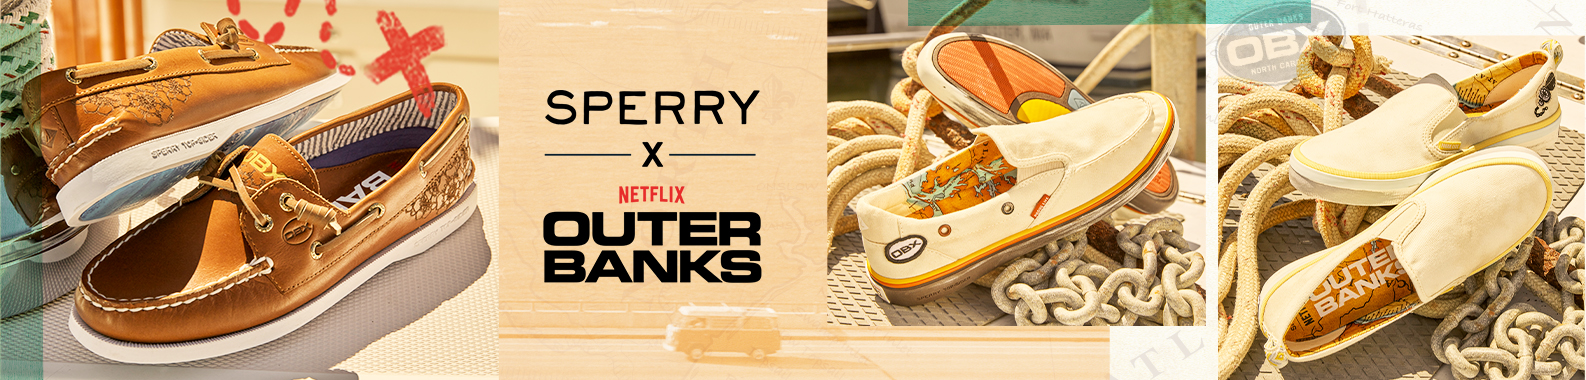 Sperry Top-Sider brand header image